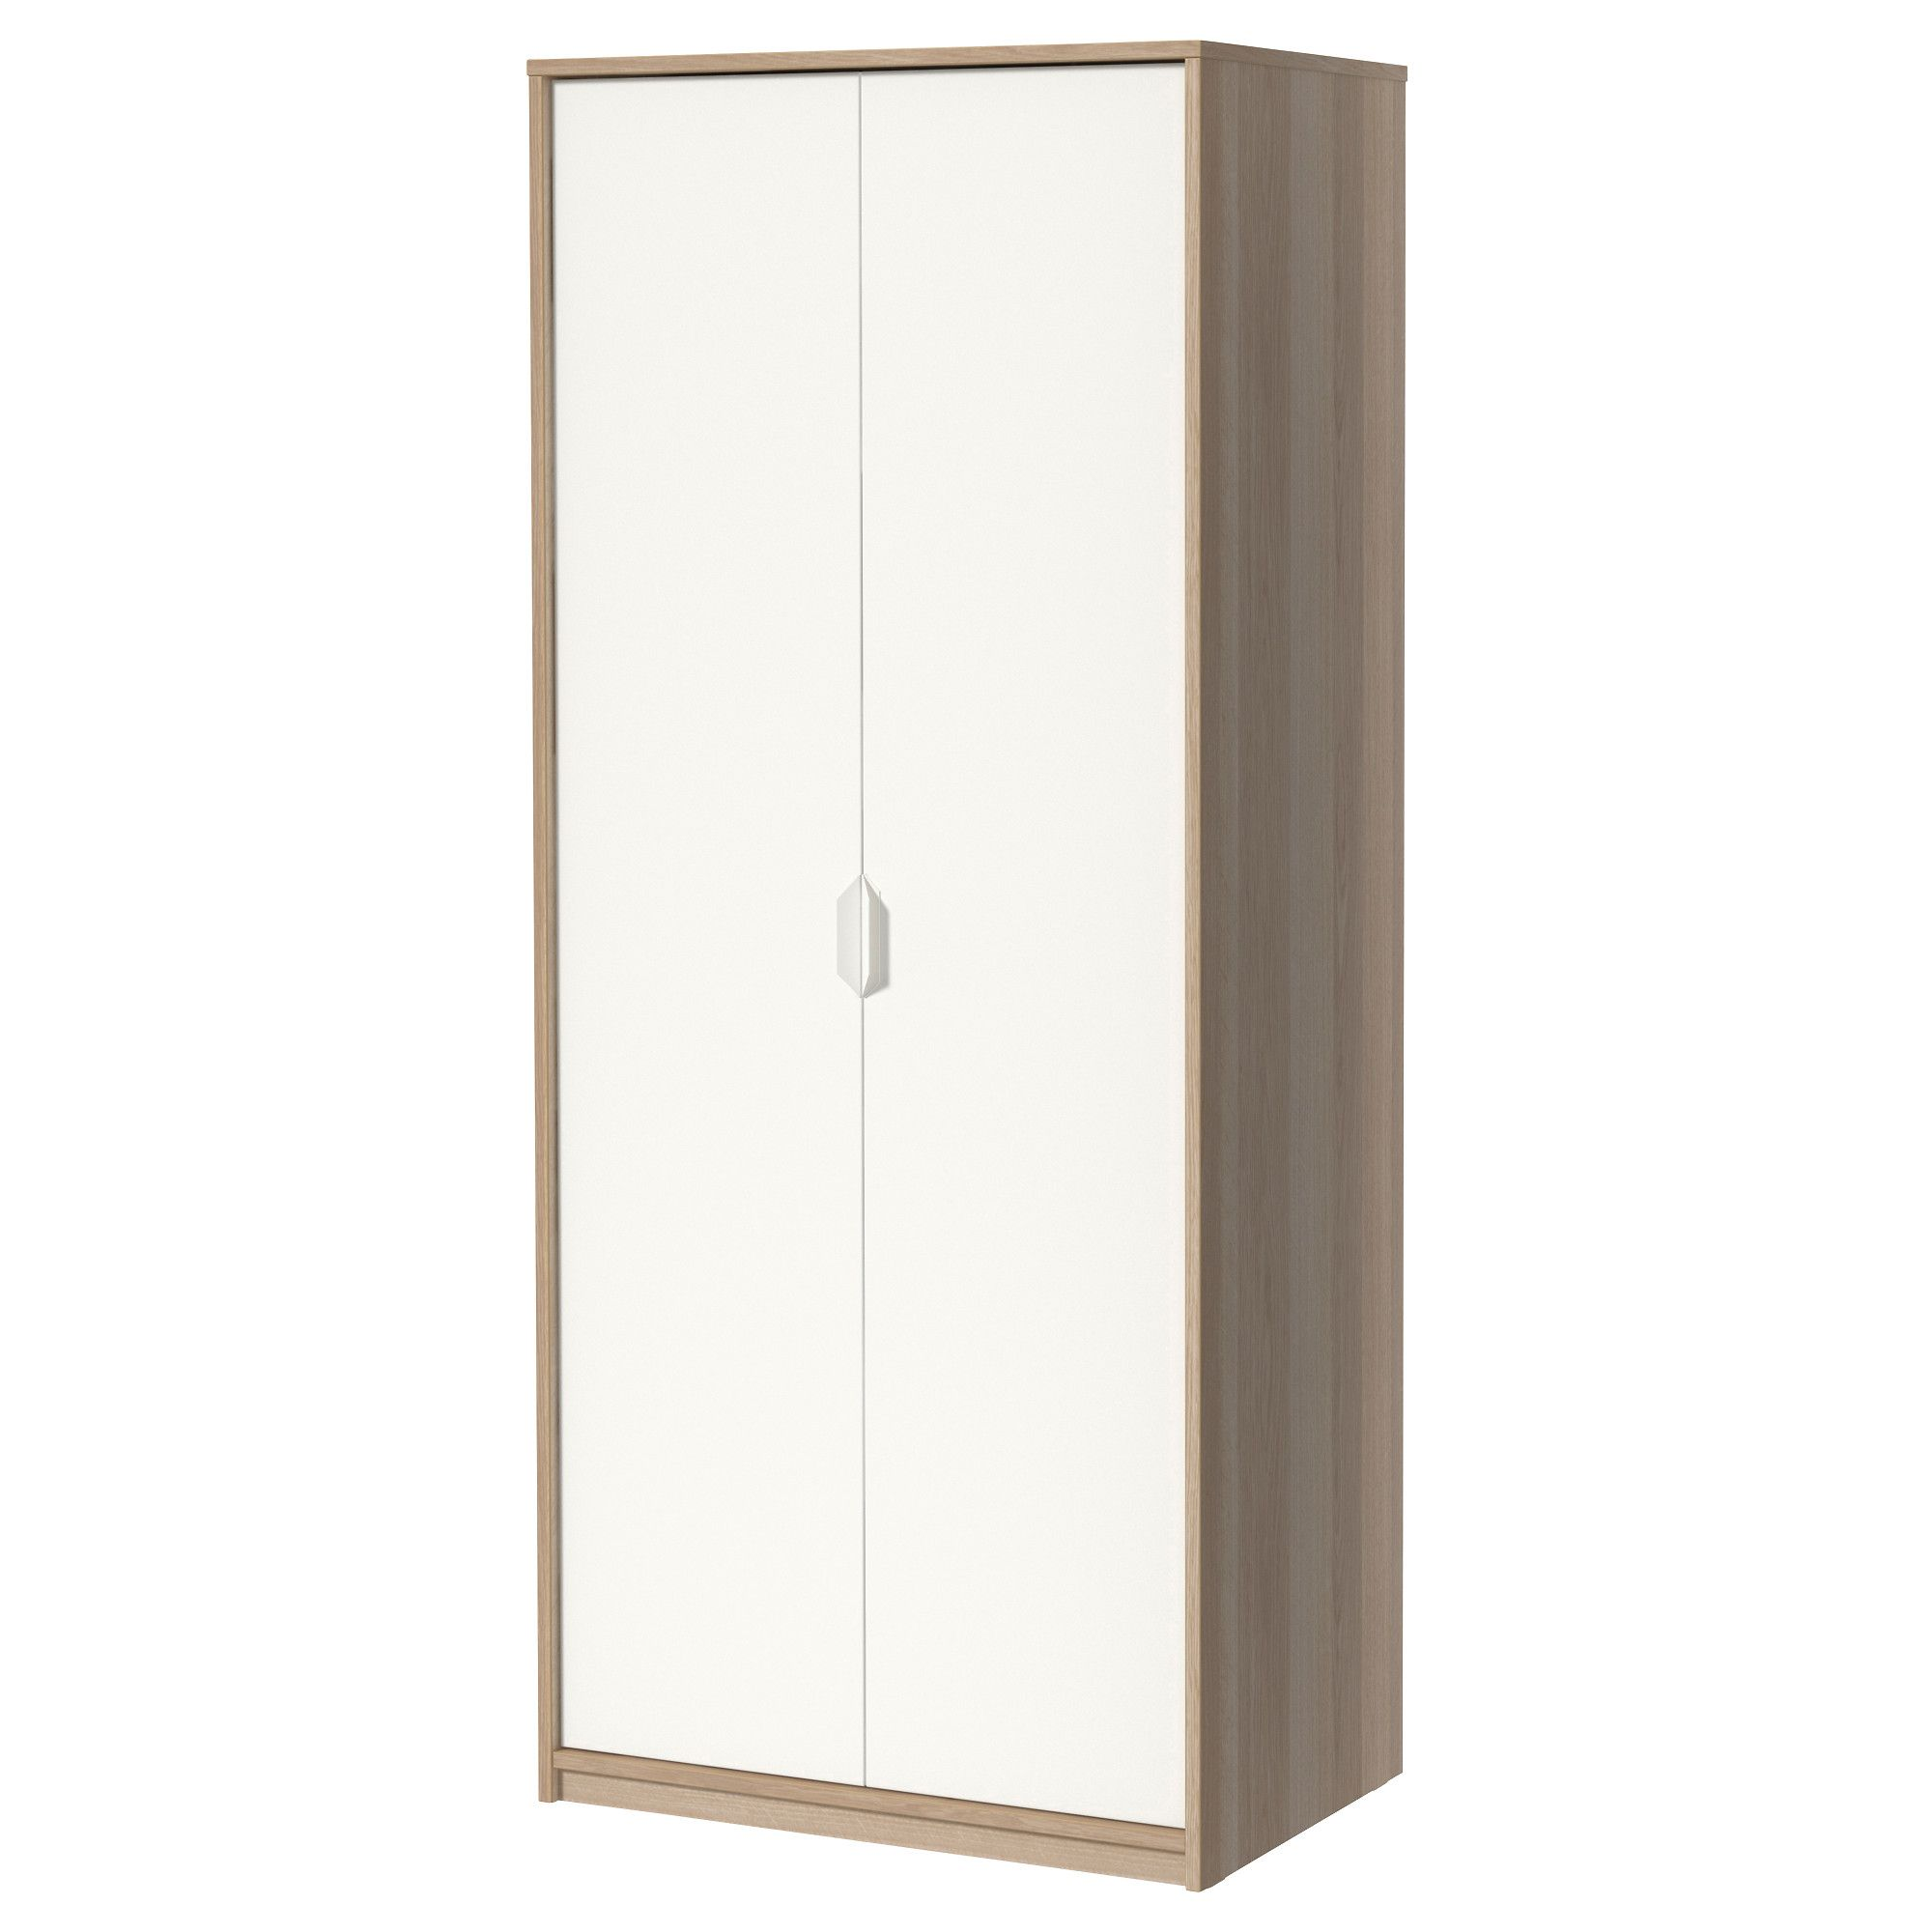 for Shop FurnitureHome AccessoriesMoreTall cabinet gIYf7vb6ym